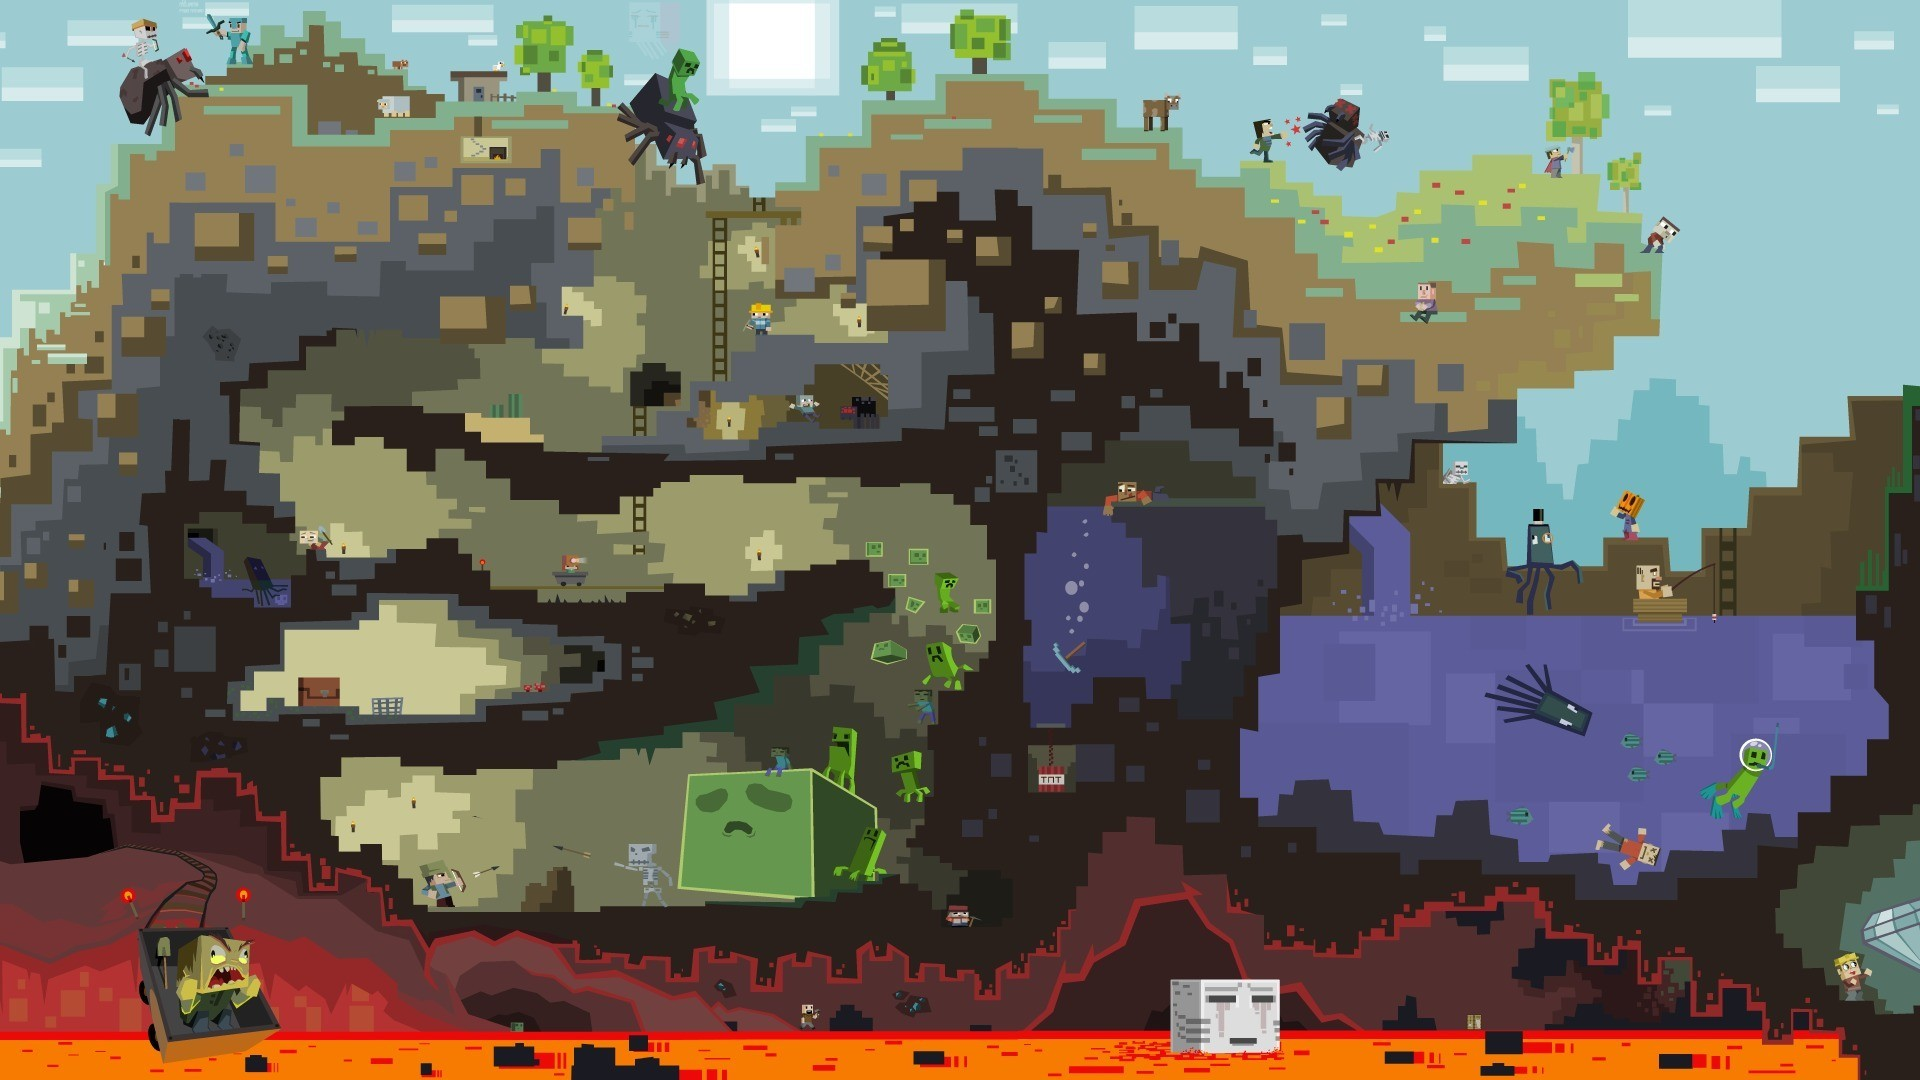 Epic Minecraft Backgrounds 72 images 1920x1080